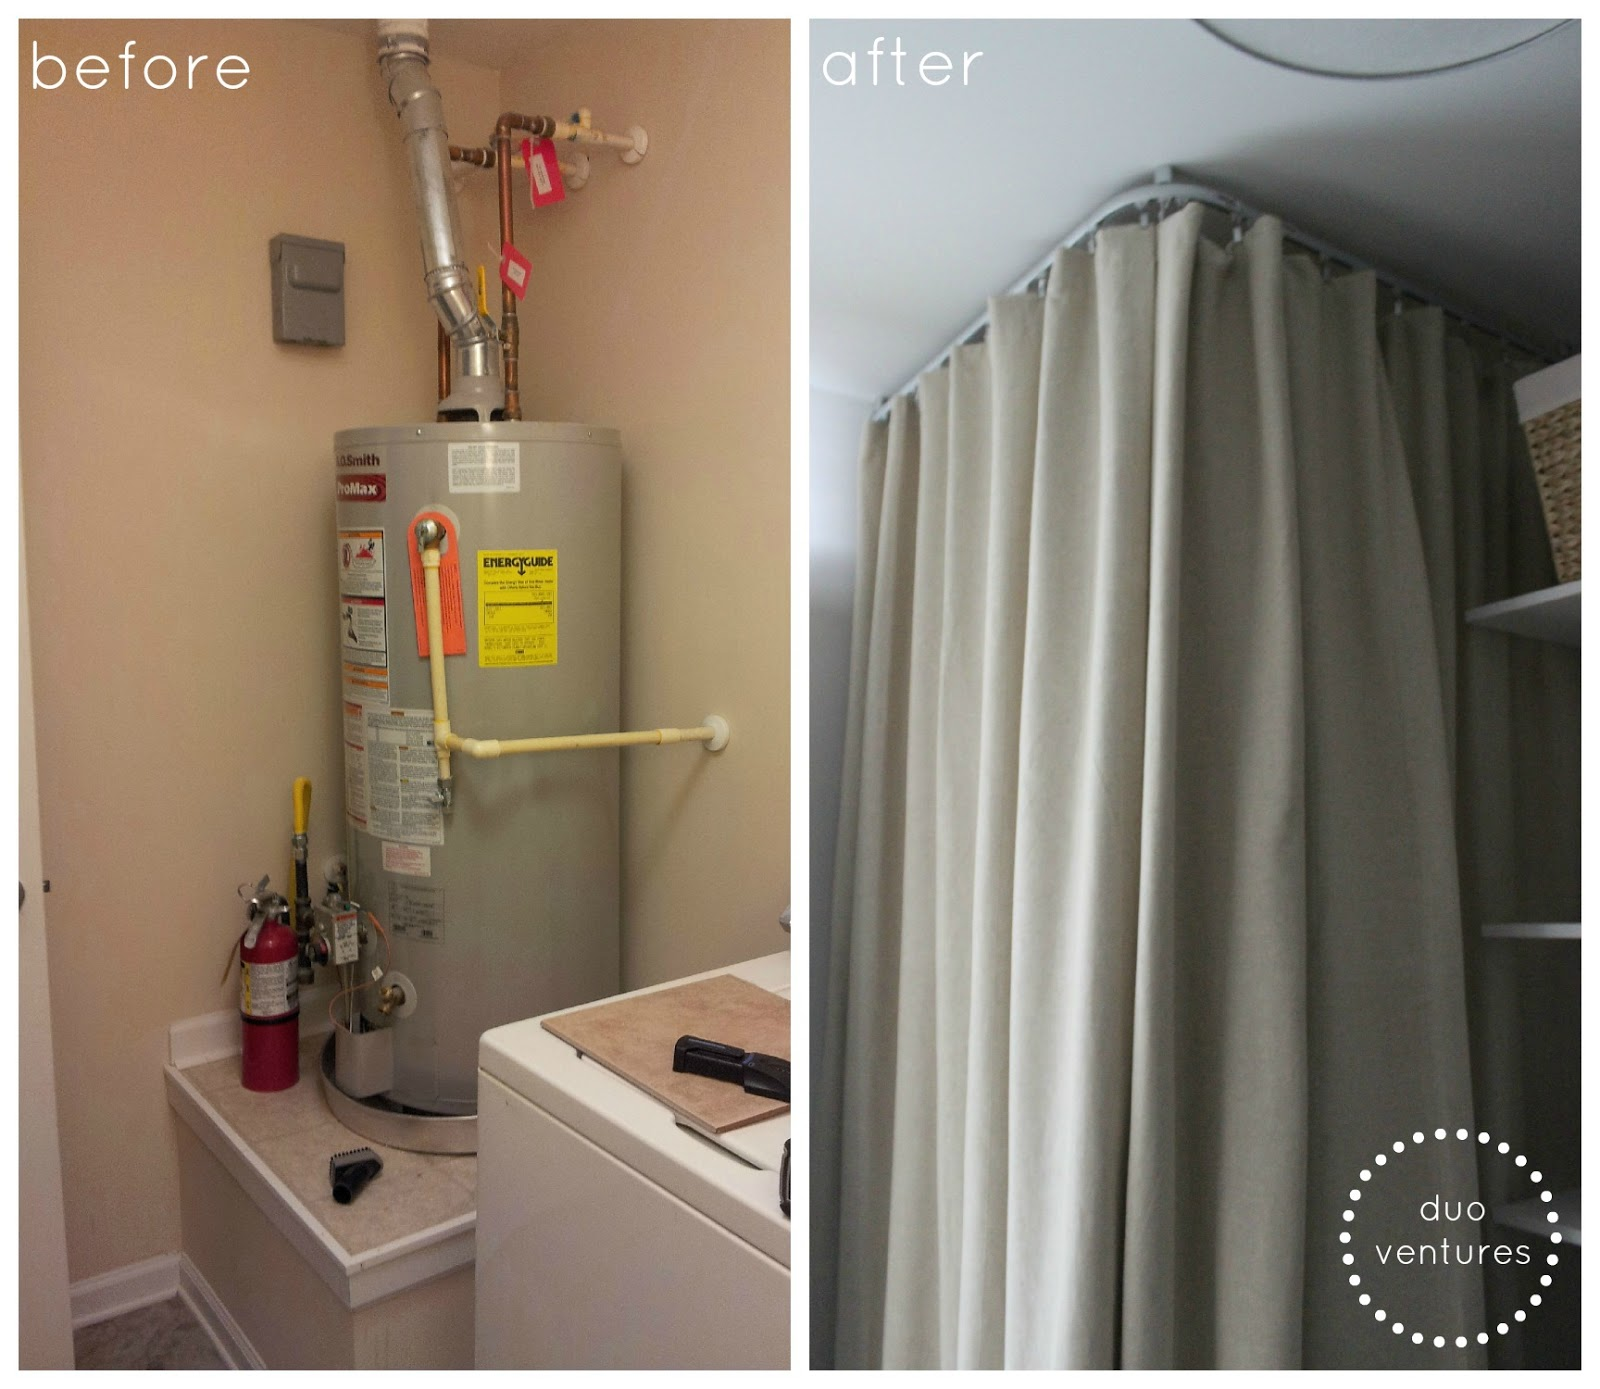 The Best Places For A Water Heater In Your Home